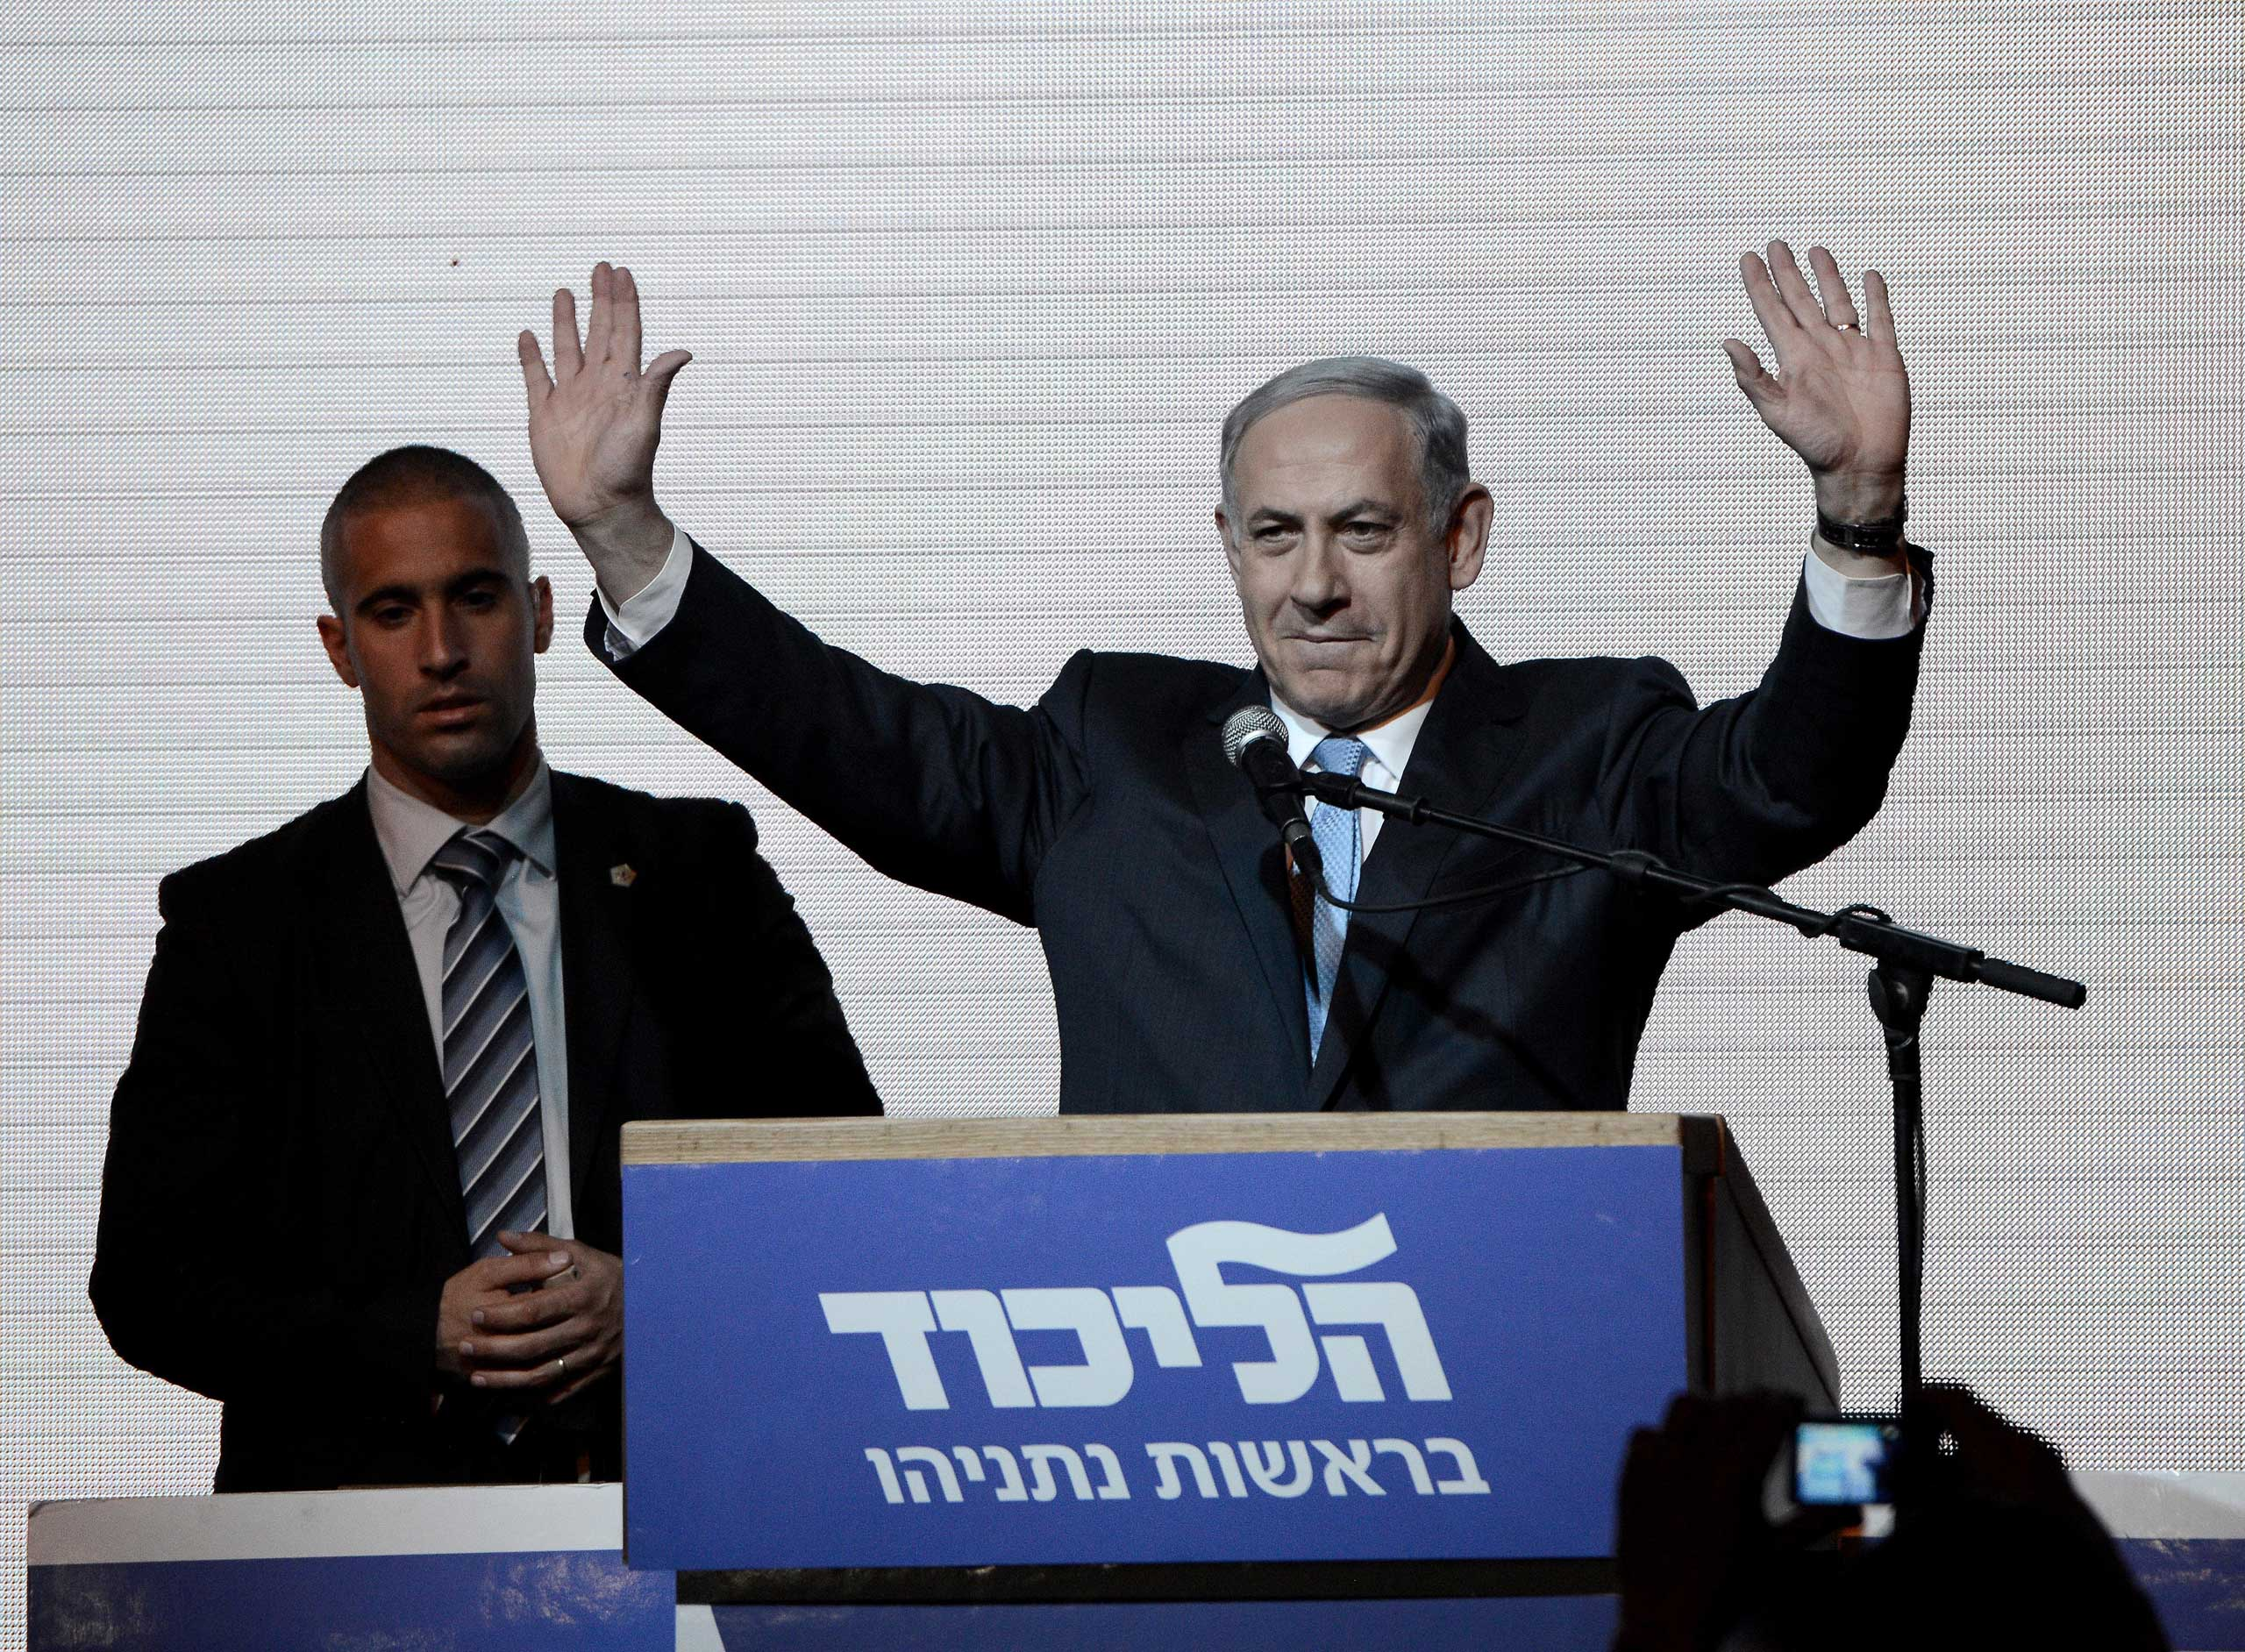 Israeli Prime Minister and the leader of the Likud Party Benjamin Netanyahu greets supporters at the party's election headquarters after the first results of the Israeli general election on March 18, 2015 in Tel Aviv, Israel.